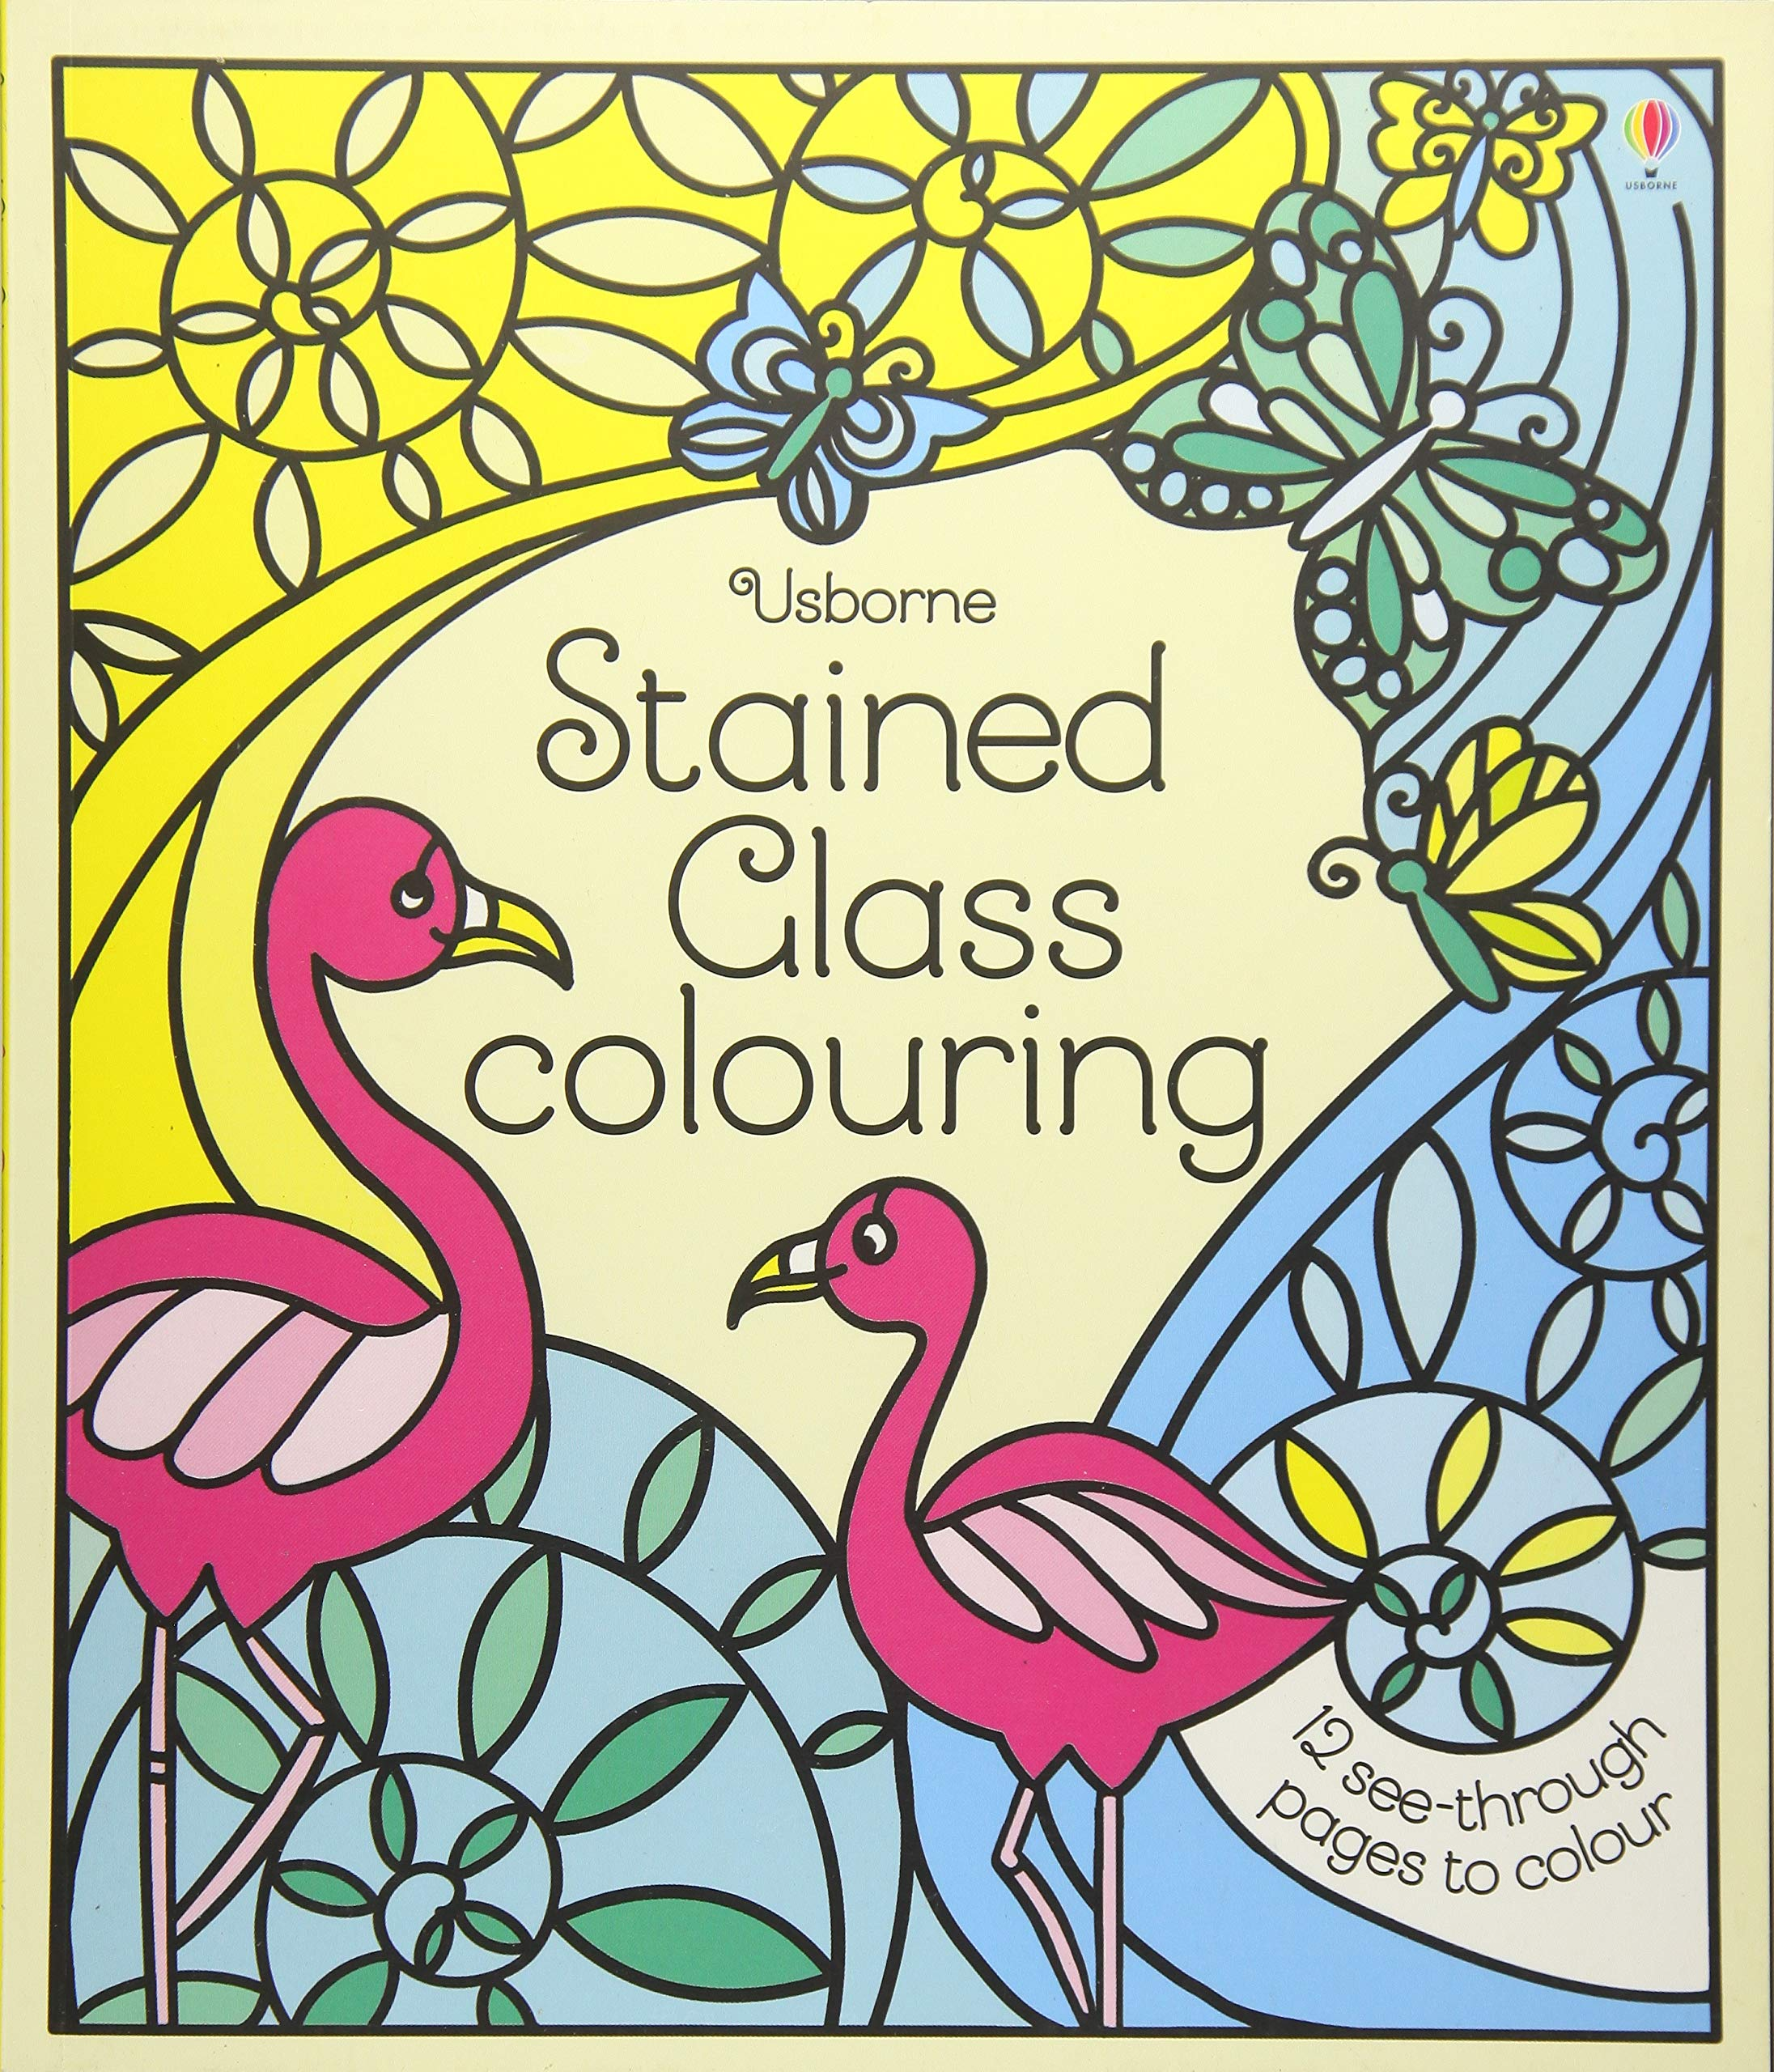 Christmas Stained Glass Coloring Usborne With Colouring Amazon Co Uk Struan Reid Sveta Dorosheva